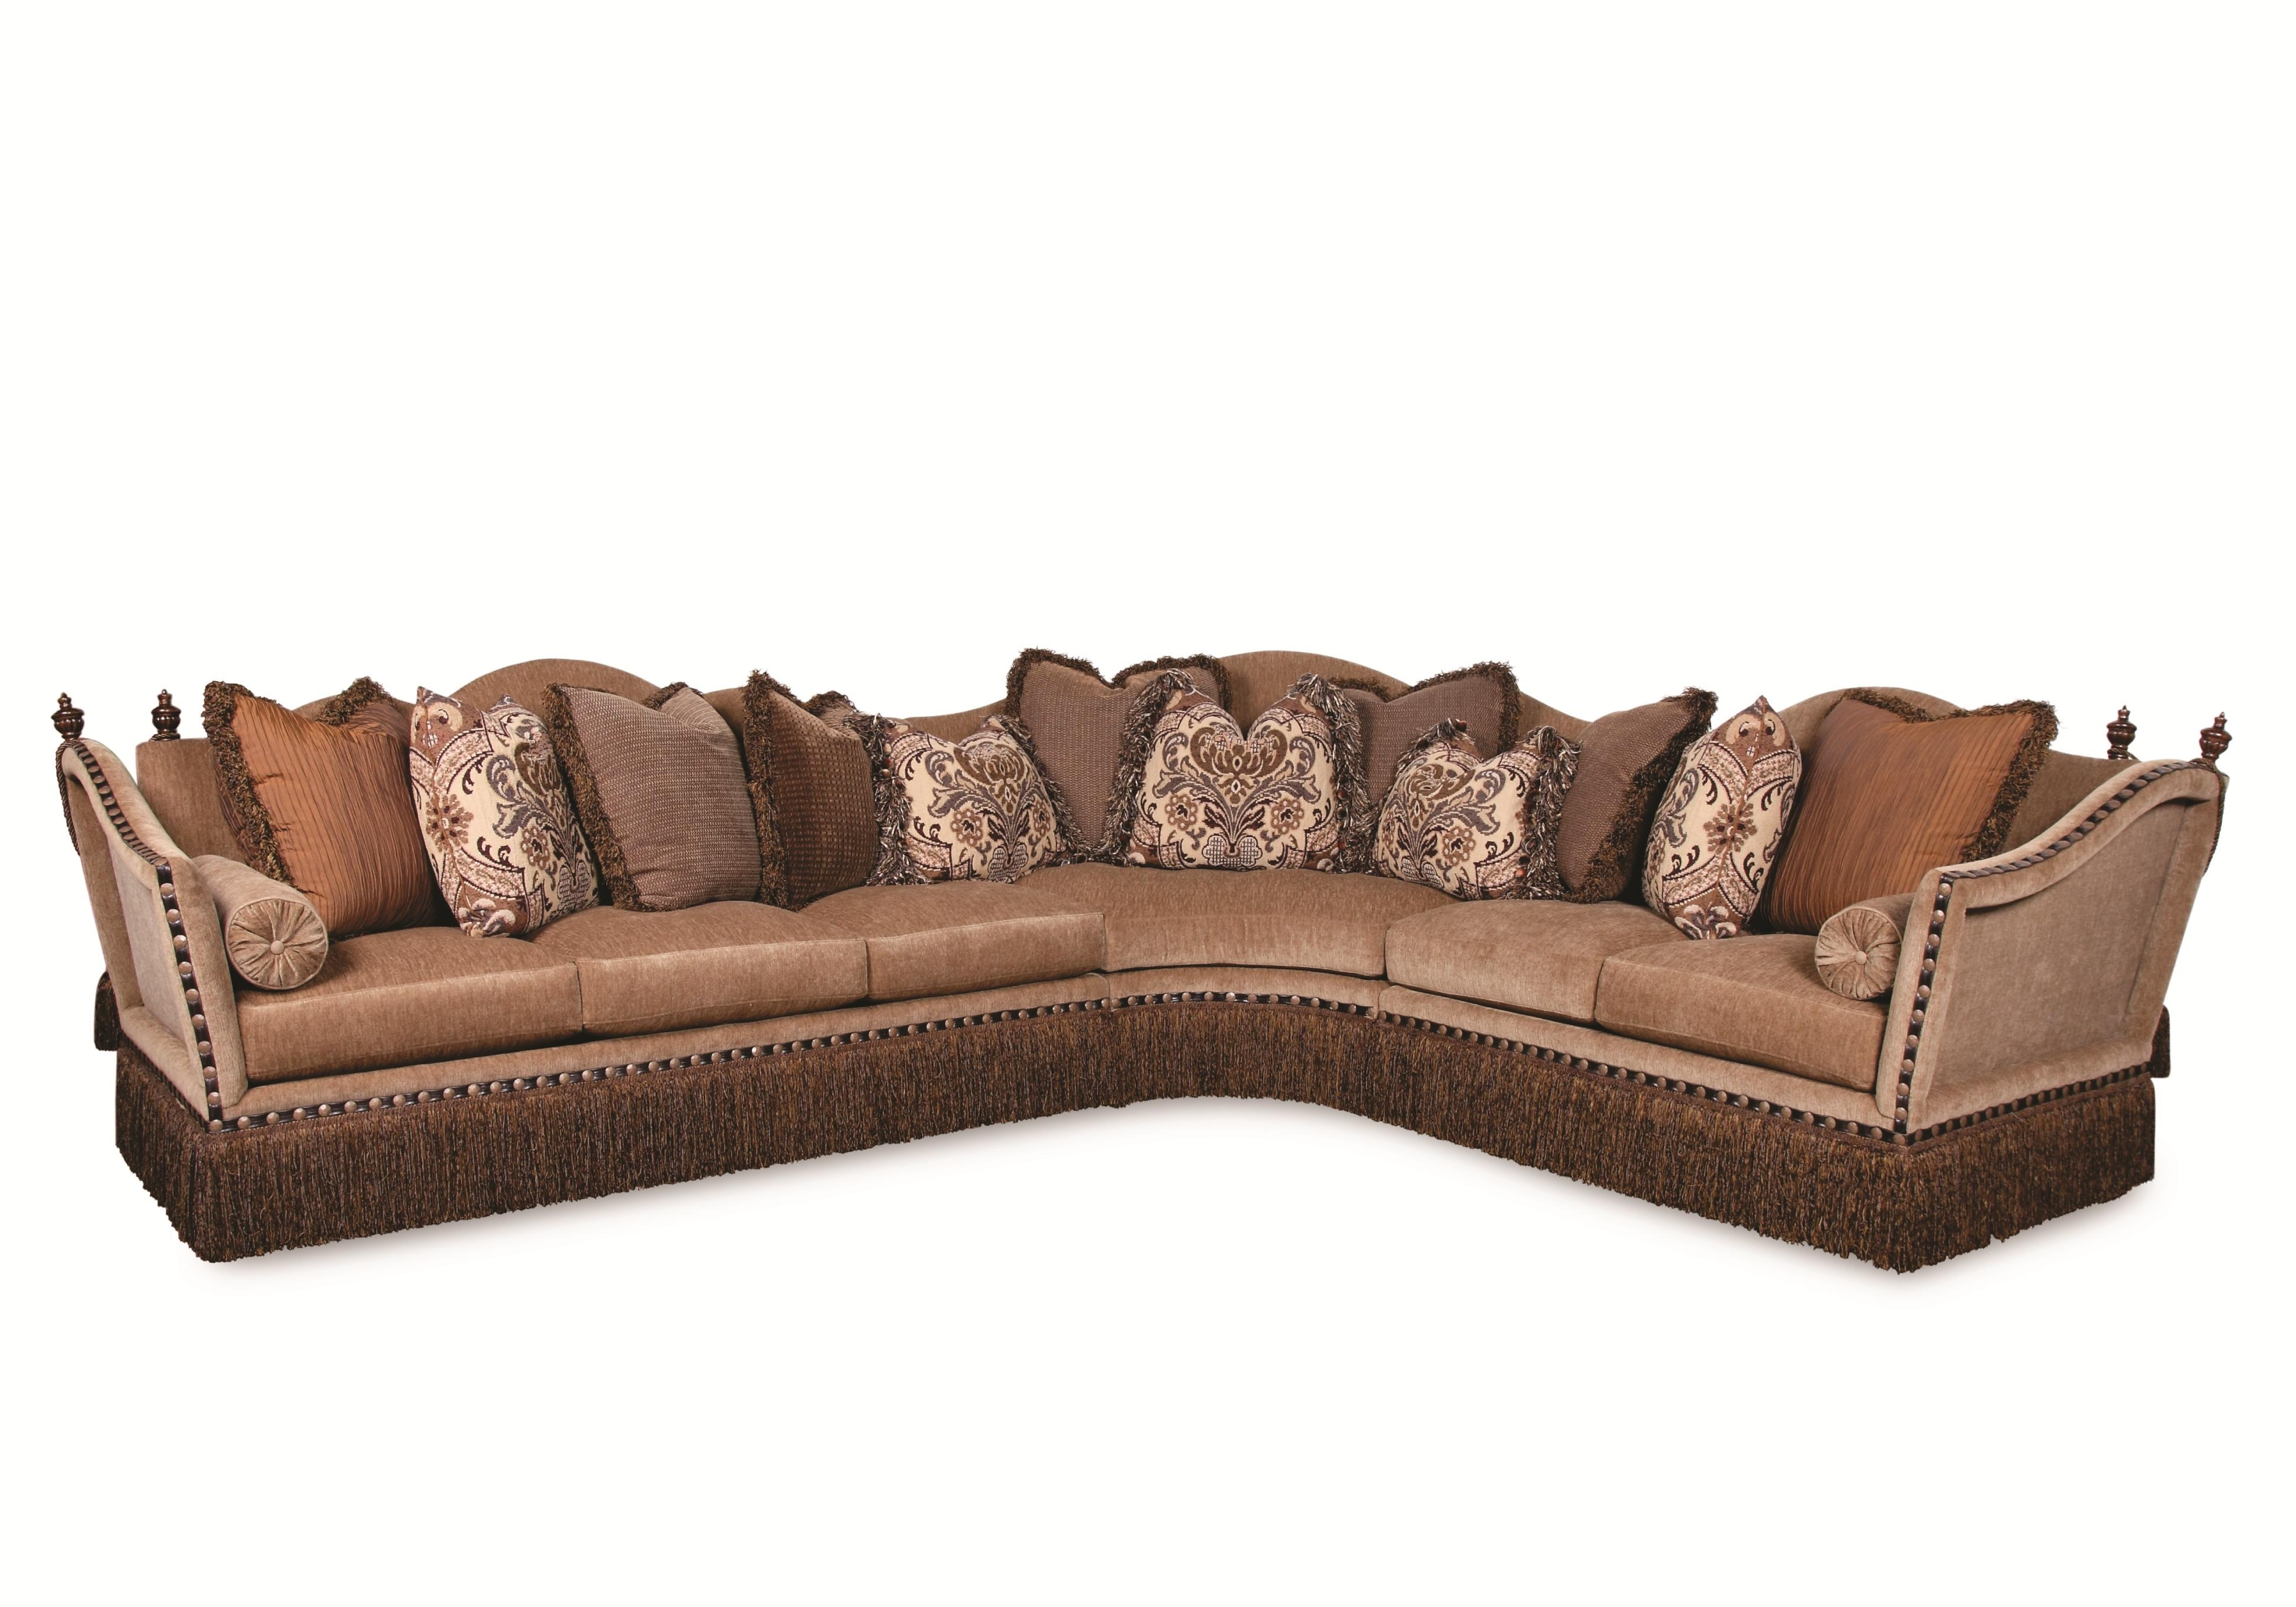 Fashionable Sectional Sofas In Savannah Ga For Lorraine Fringed Sectional Sofarachlin Classics (View 14 of 20)